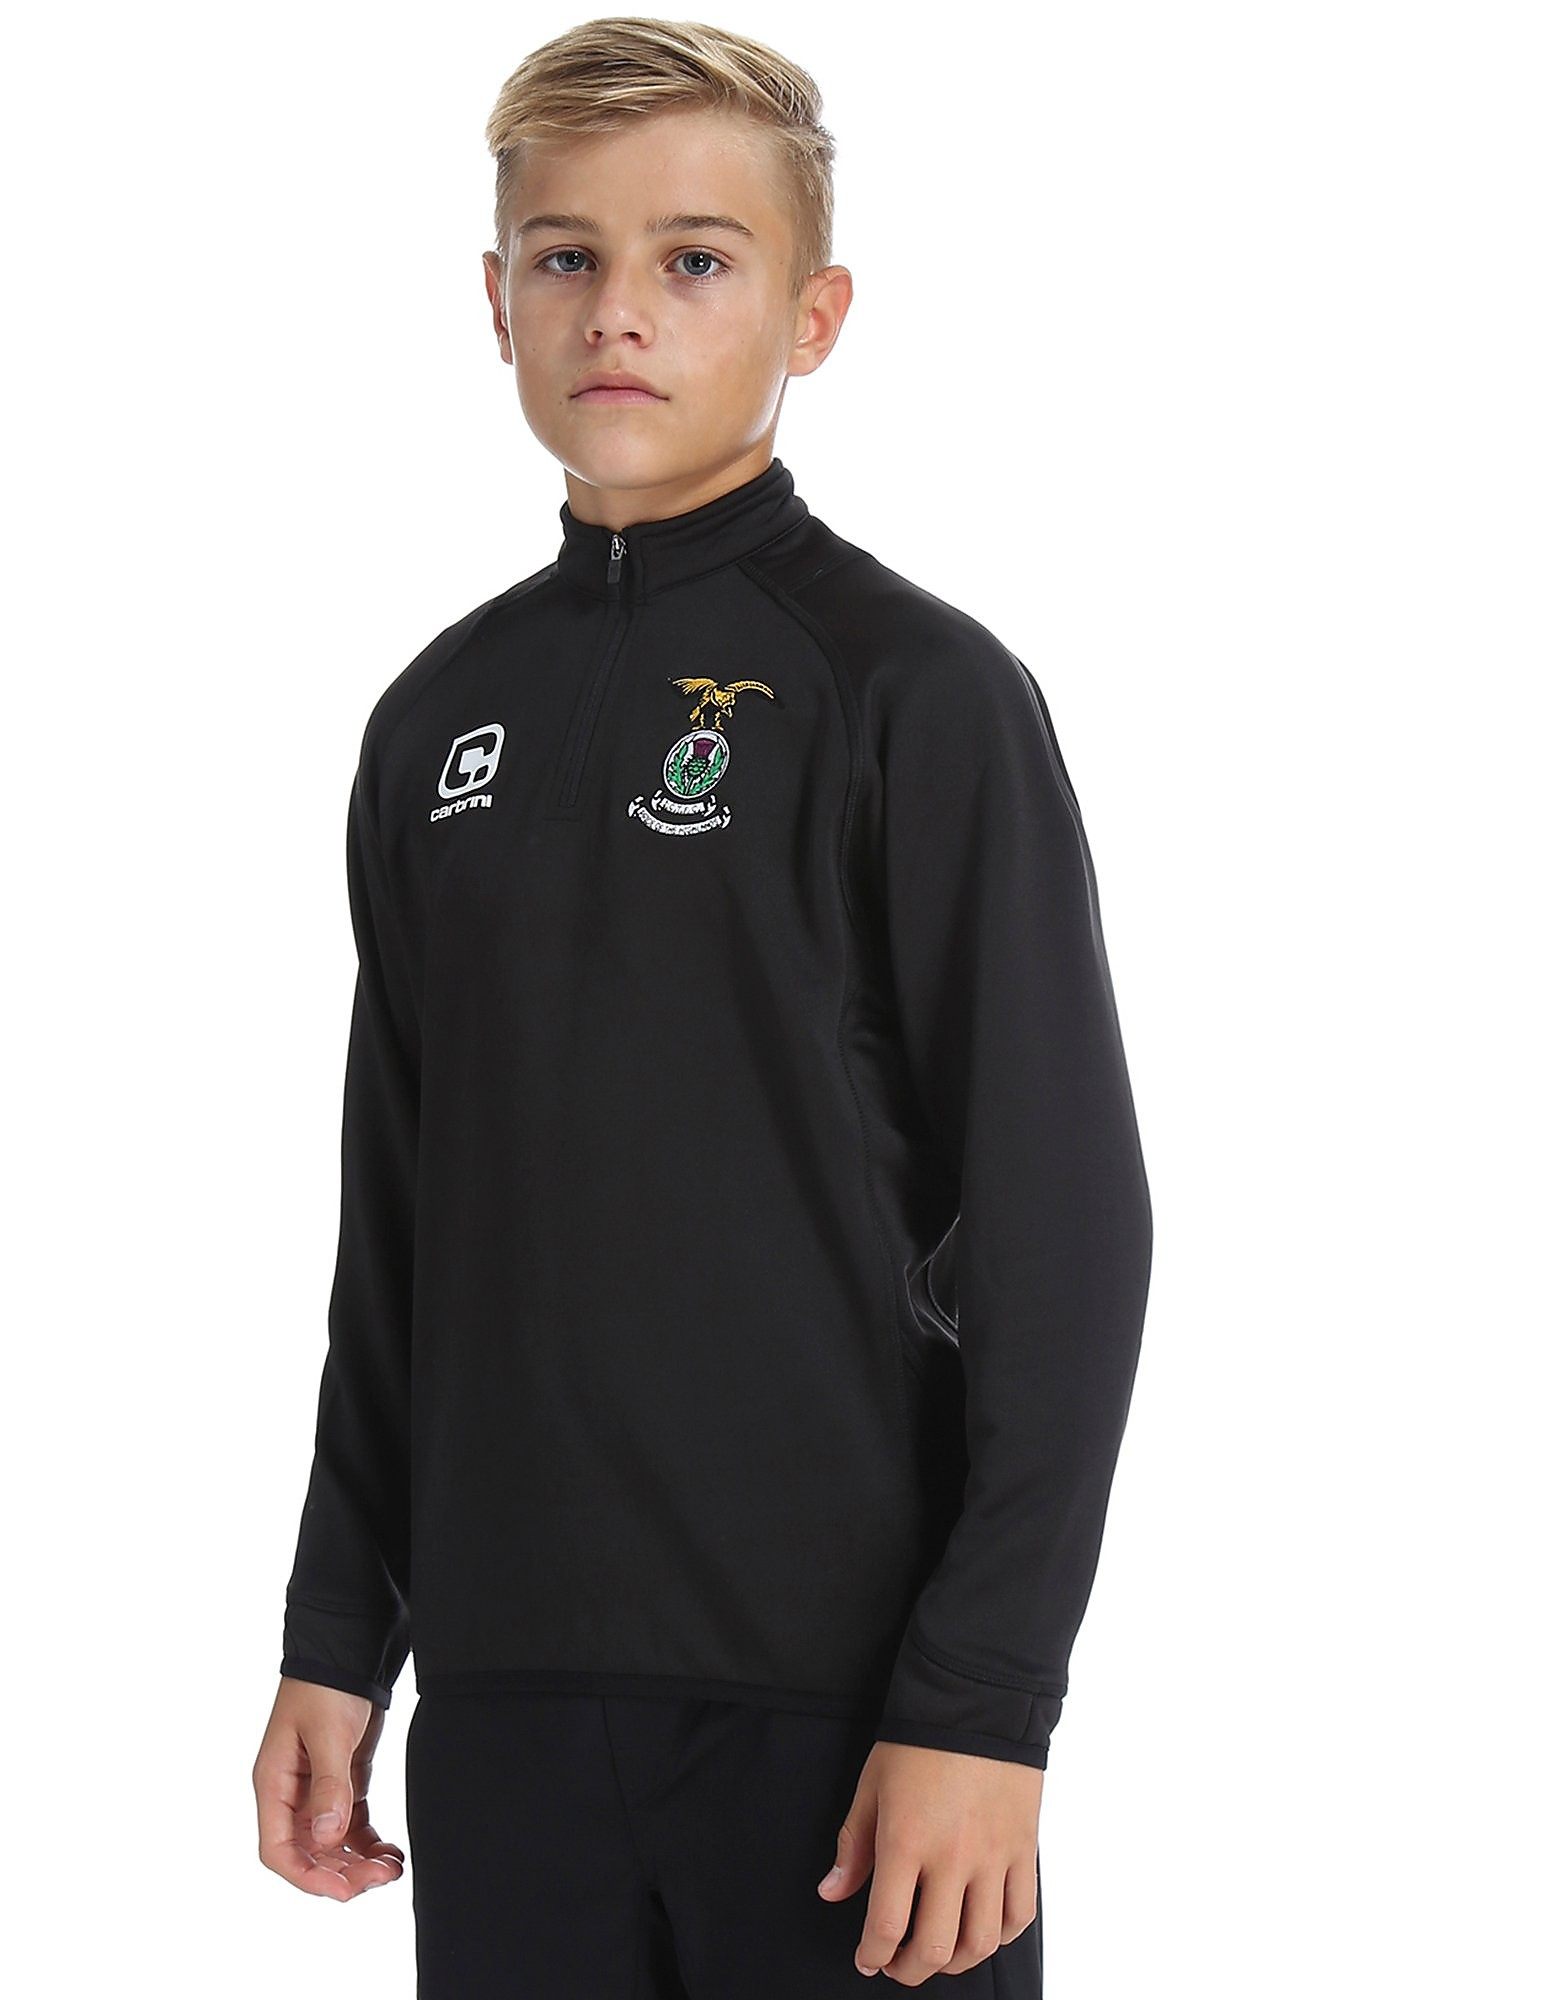 Carbrini Inverness CT 2016/17 Sweat Top Junior